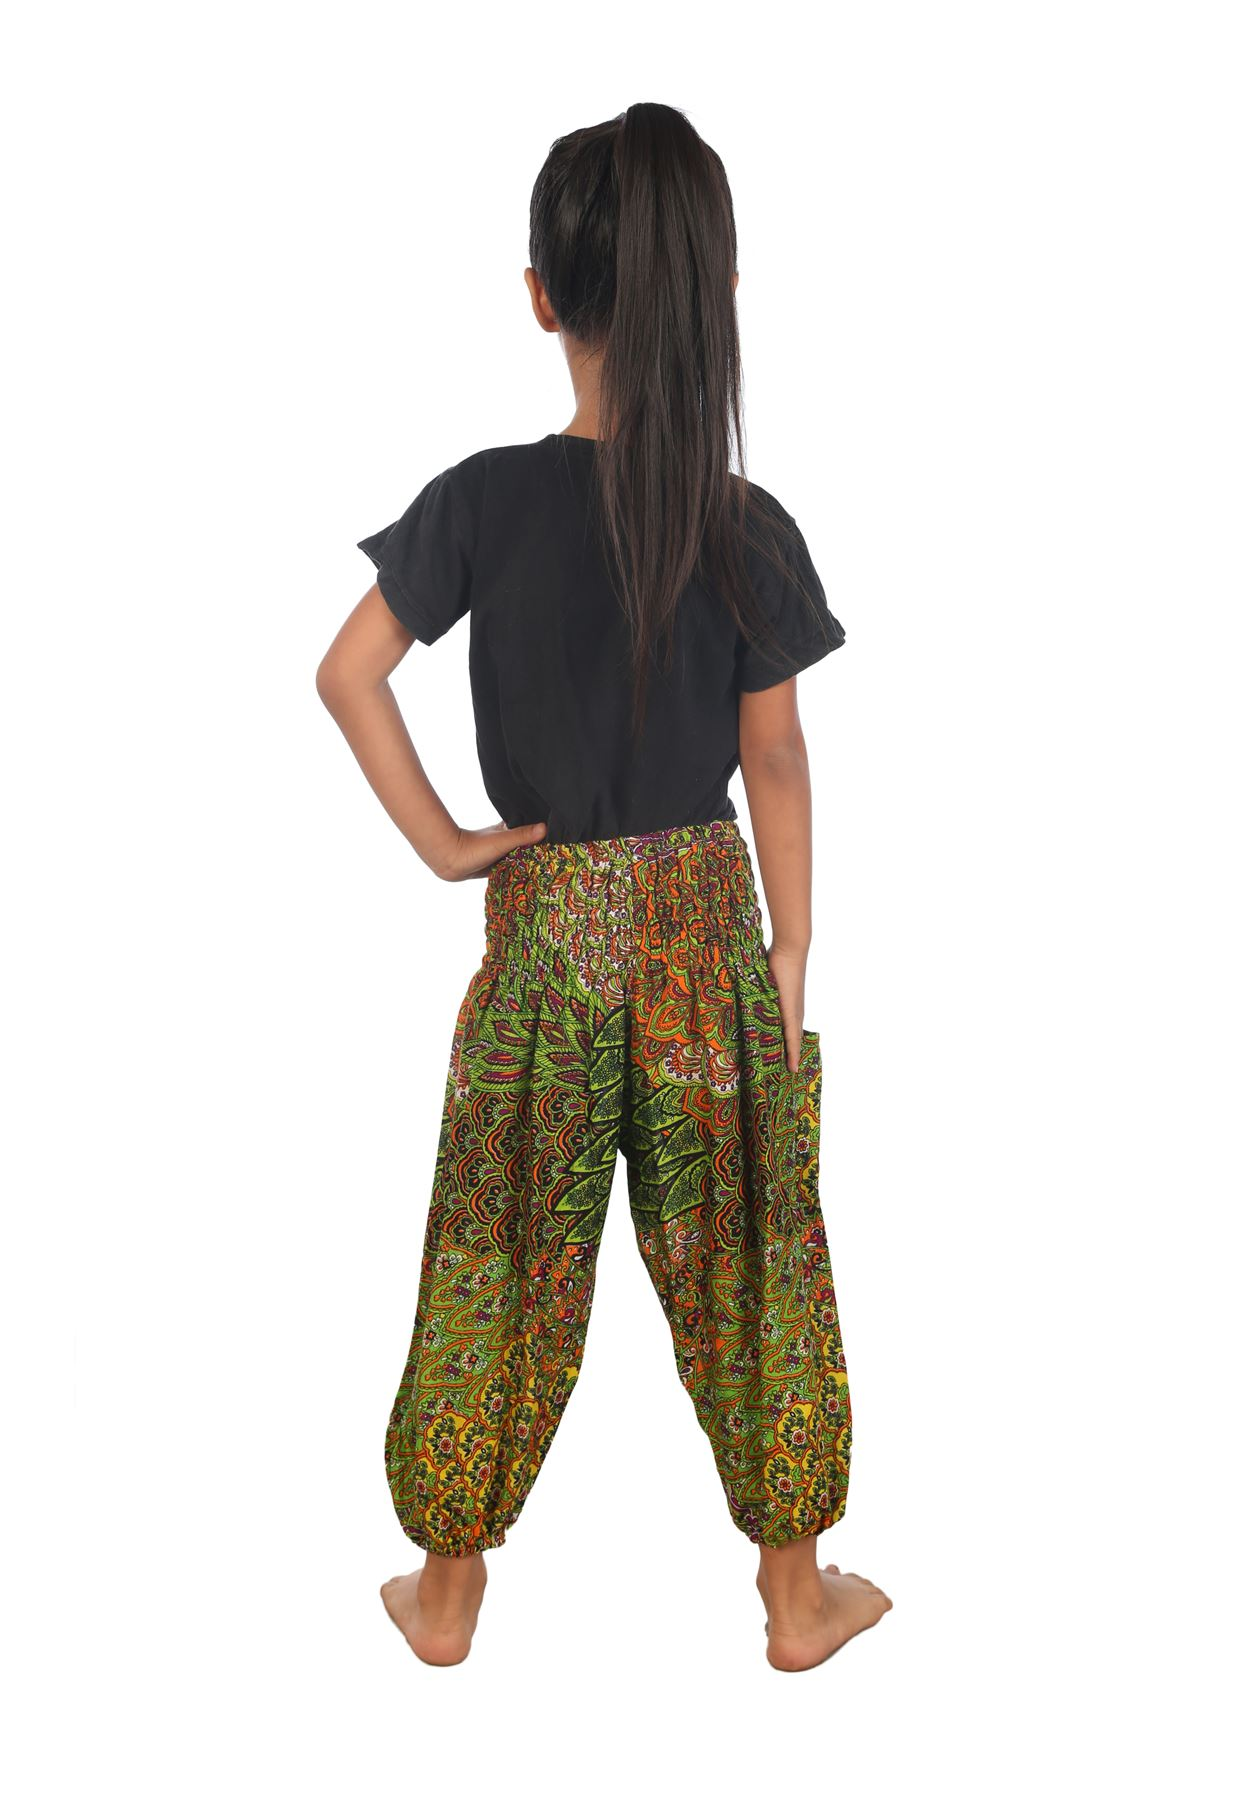 You searched for: kids harem pants! Etsy is the home to thousands of handmade, vintage, and one-of-a-kind products and gifts related to your search. No matter what you're looking for or where you are in the world, our global marketplace of sellers can help you find unique and affordable options. Let's get started!